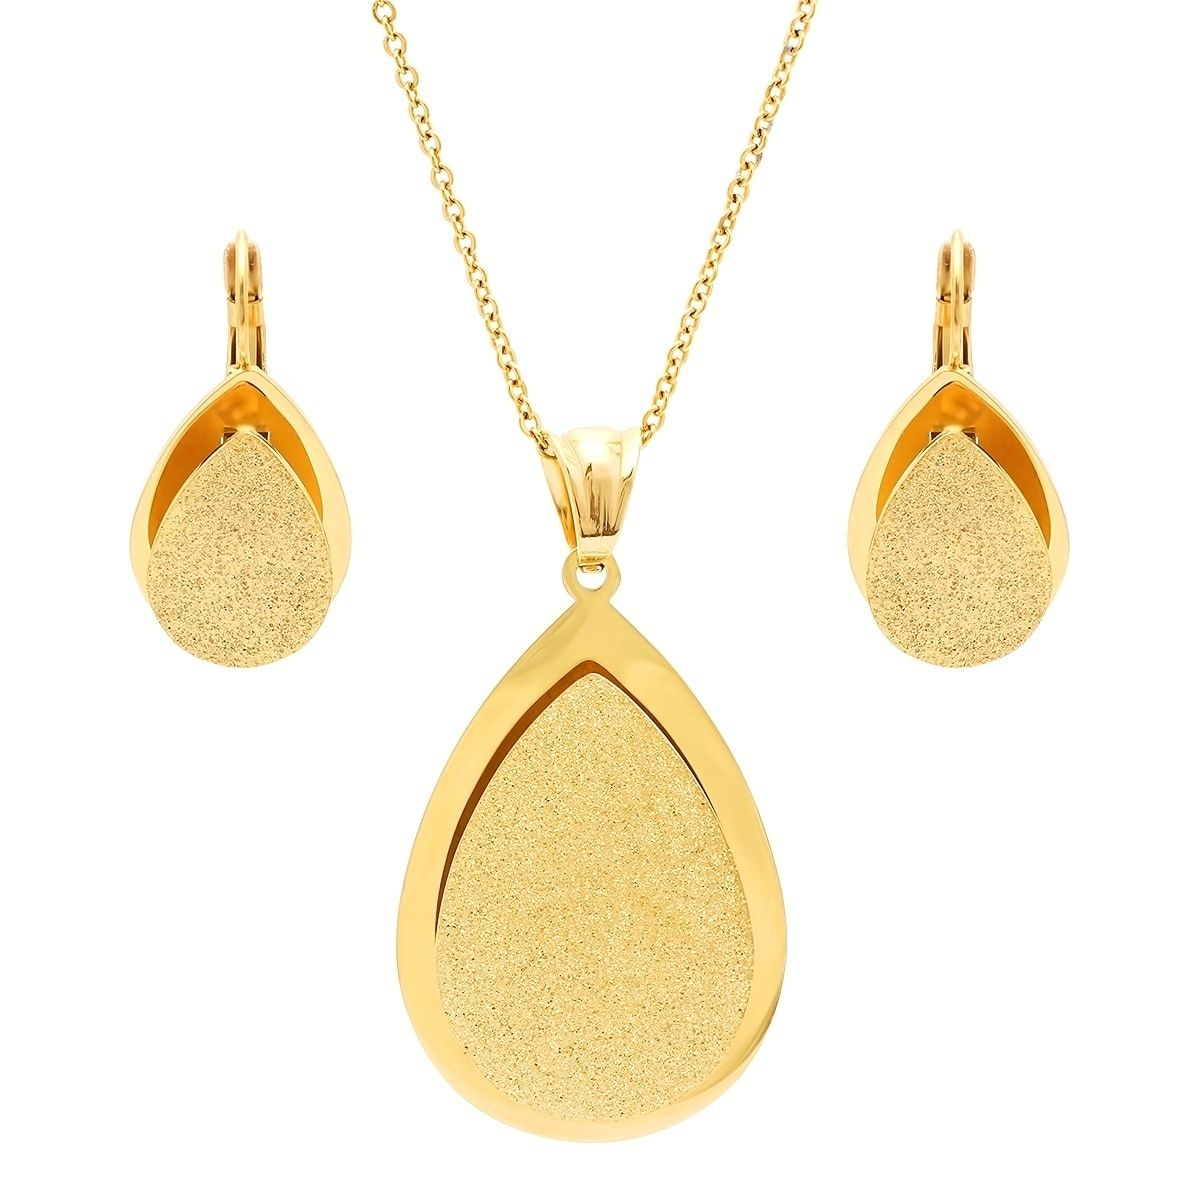 Piatella ladies gold tone glitter teardrop earring and pendant set